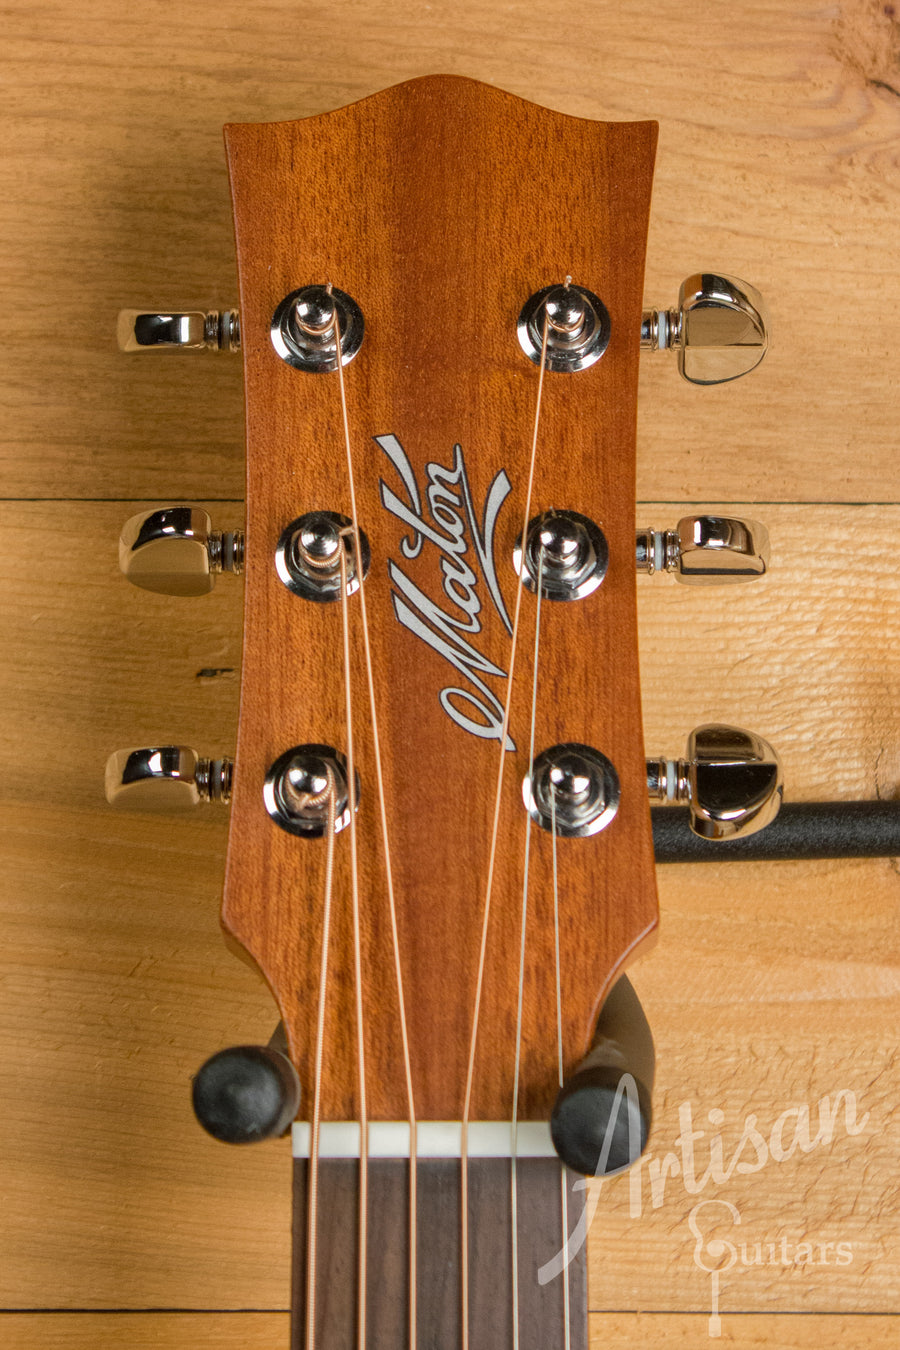 Maton SRS808C Guitar Western Red Cedar and Solid Blackwood Cutaway ID-11207 - Artisan Guitars